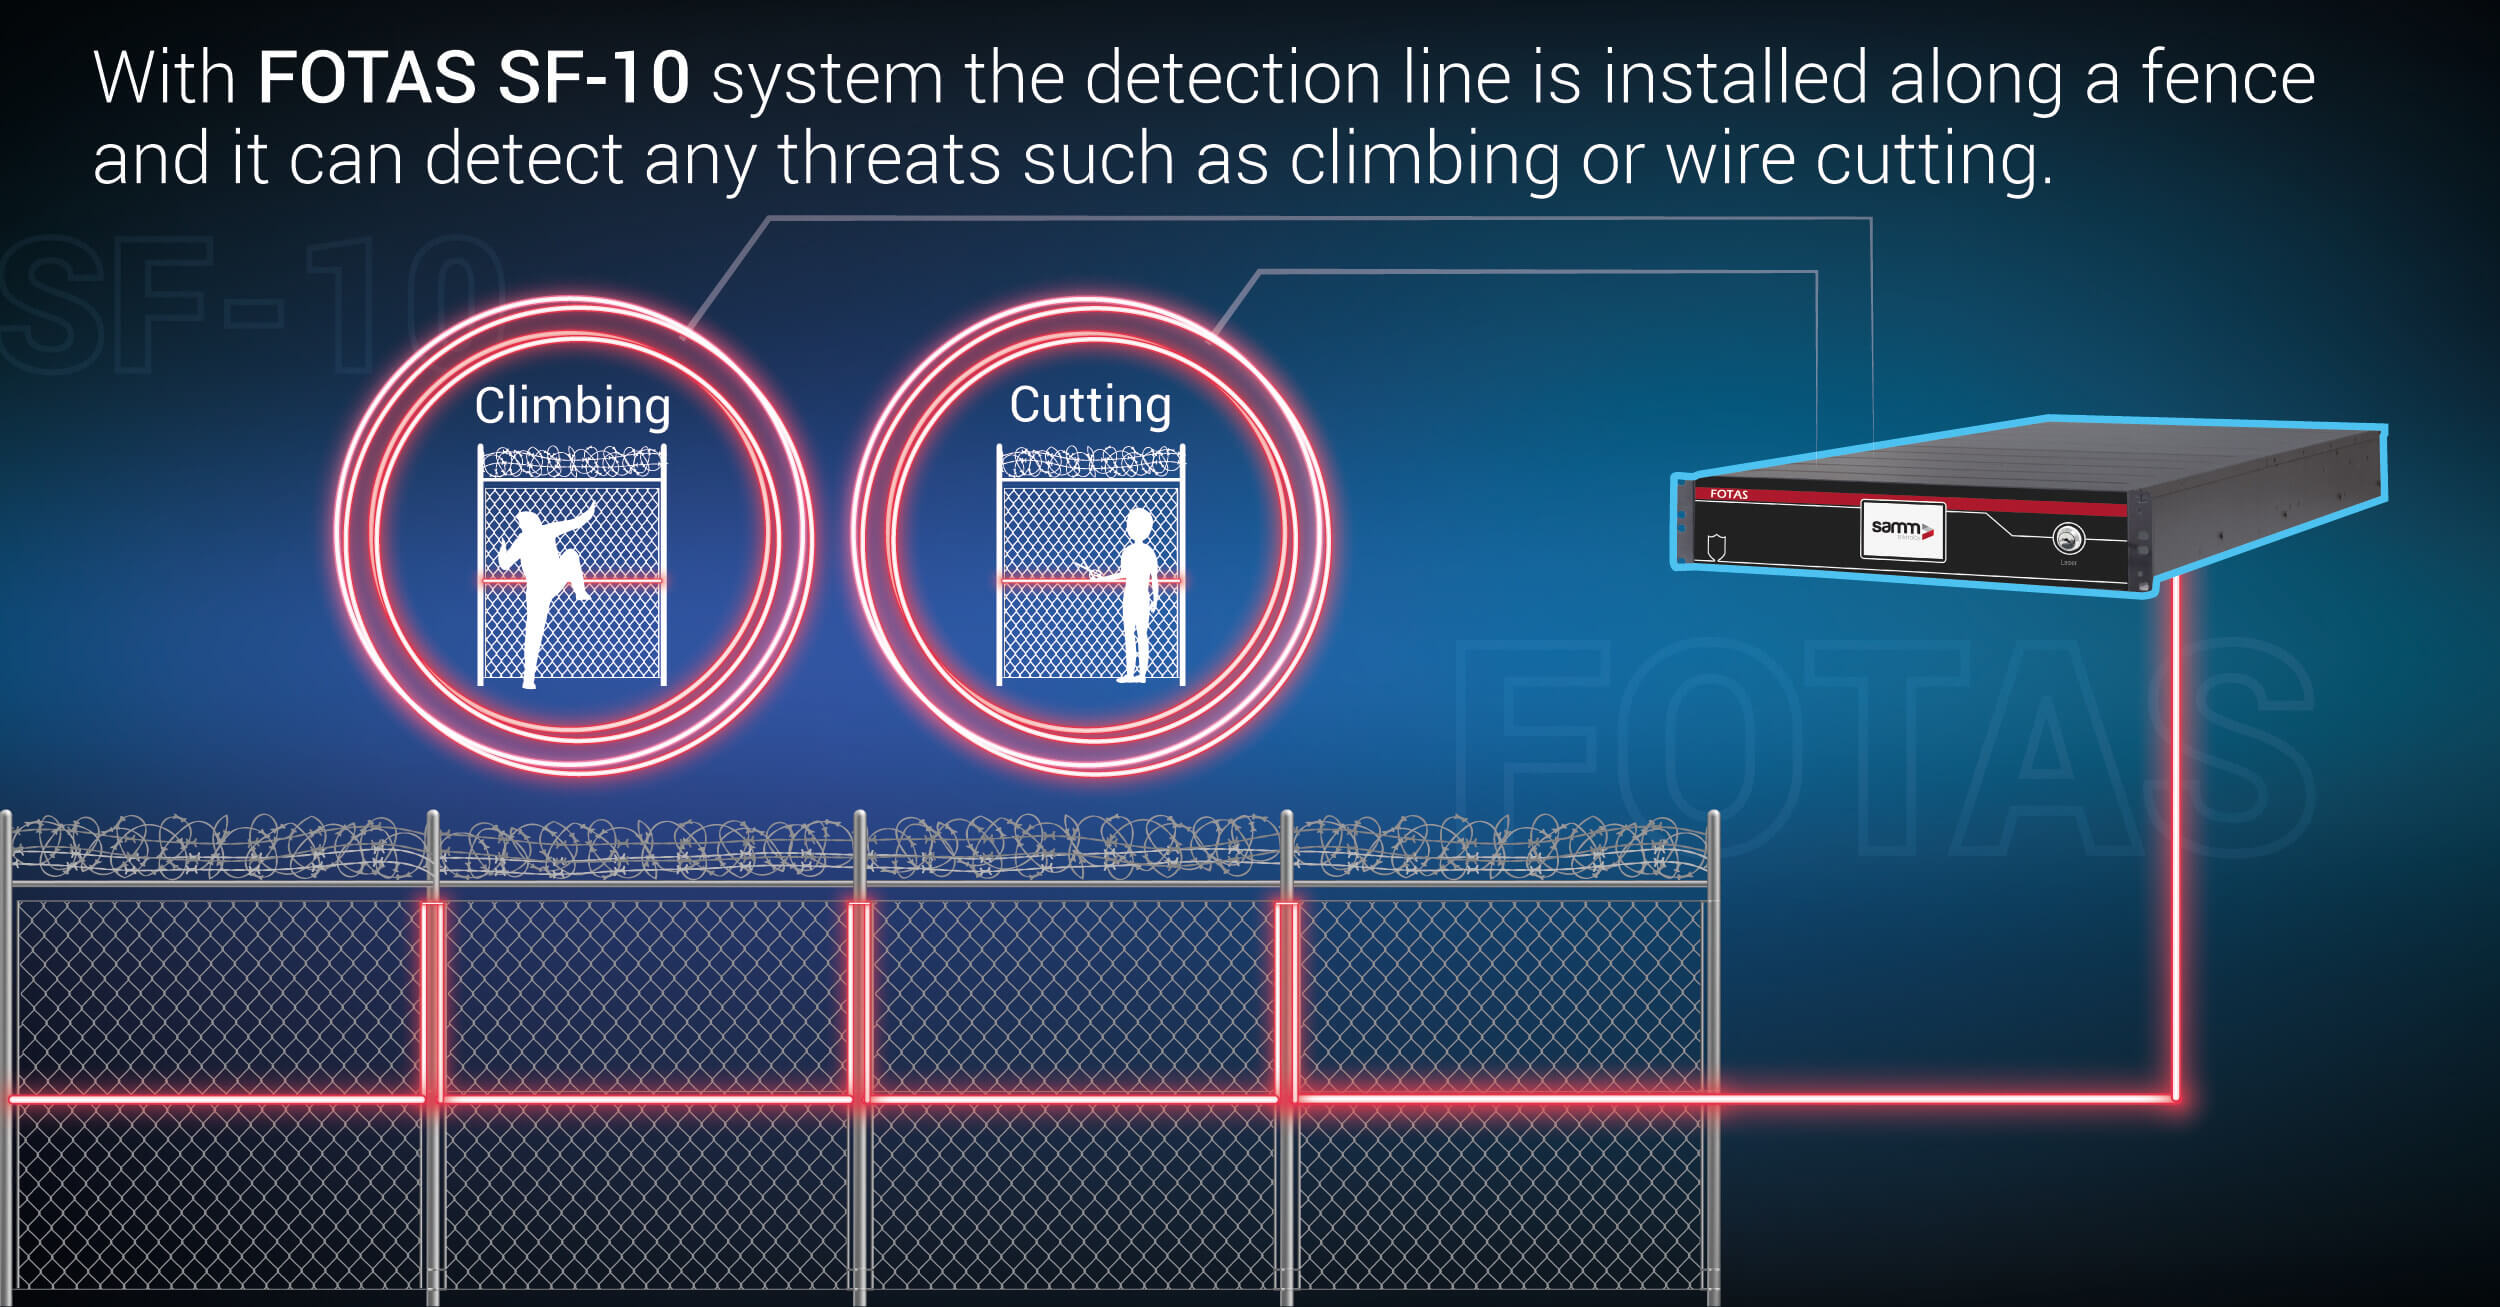 Fiber optic detection system SF-10 | Samm Teknoloji